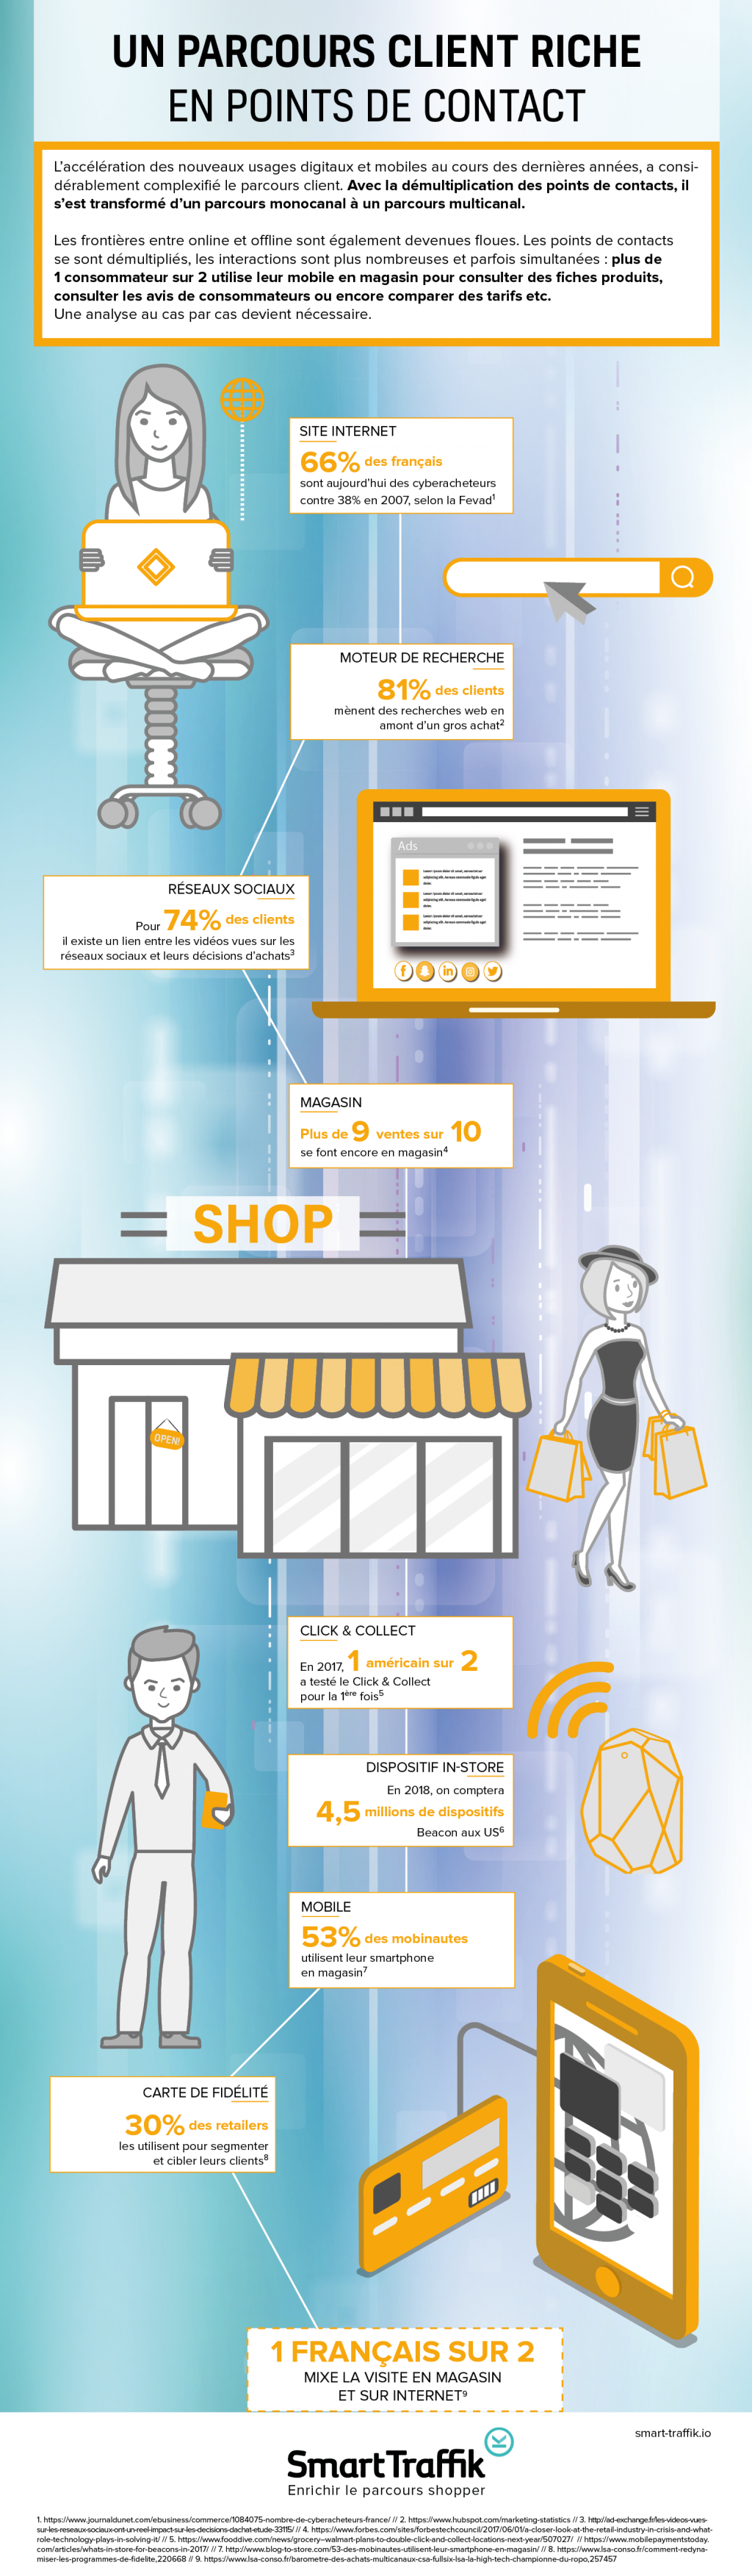 Infographie CUSTOMER journey Omnicanal - Smart Traffik - UN PARCOURS CLIENT RICHE EN POINTS DE CONTACT